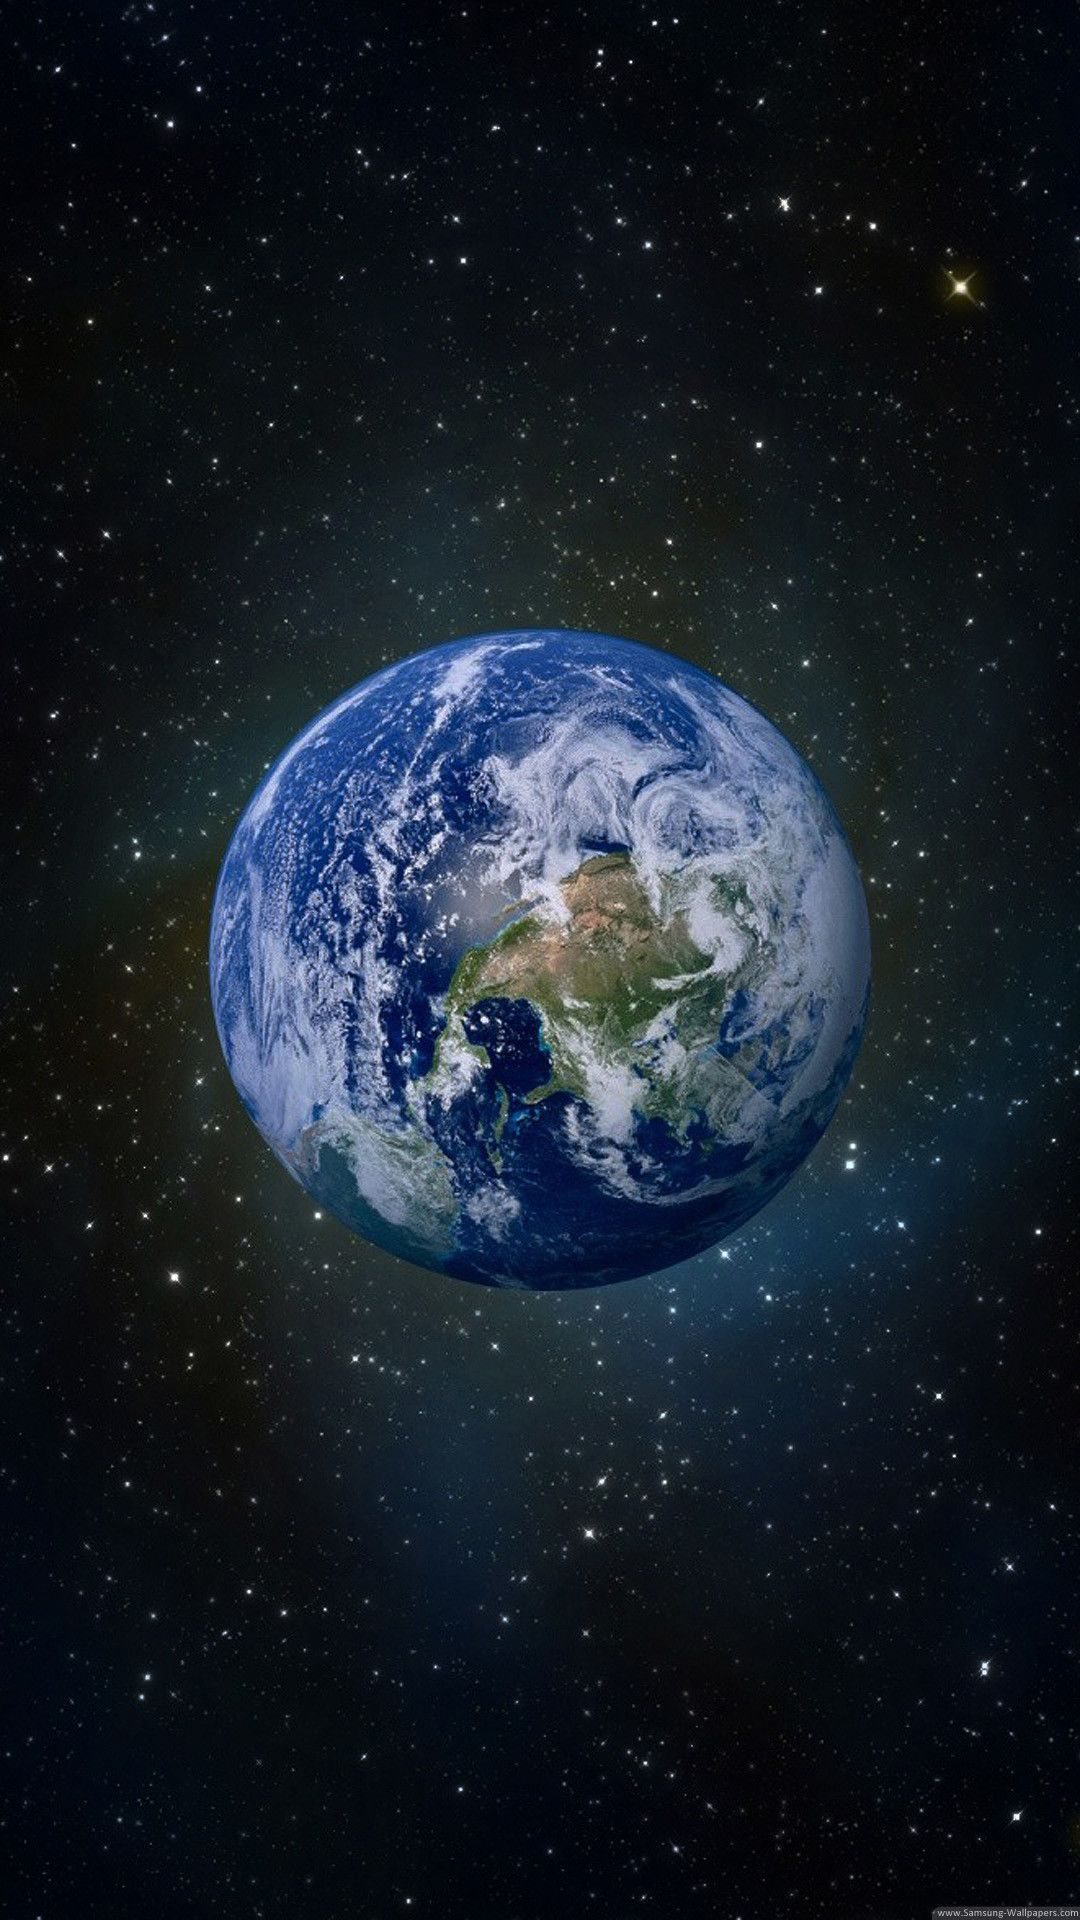 Iphone earth wallpapers top free iphone earth - Middle earth iphone wallpaper ...